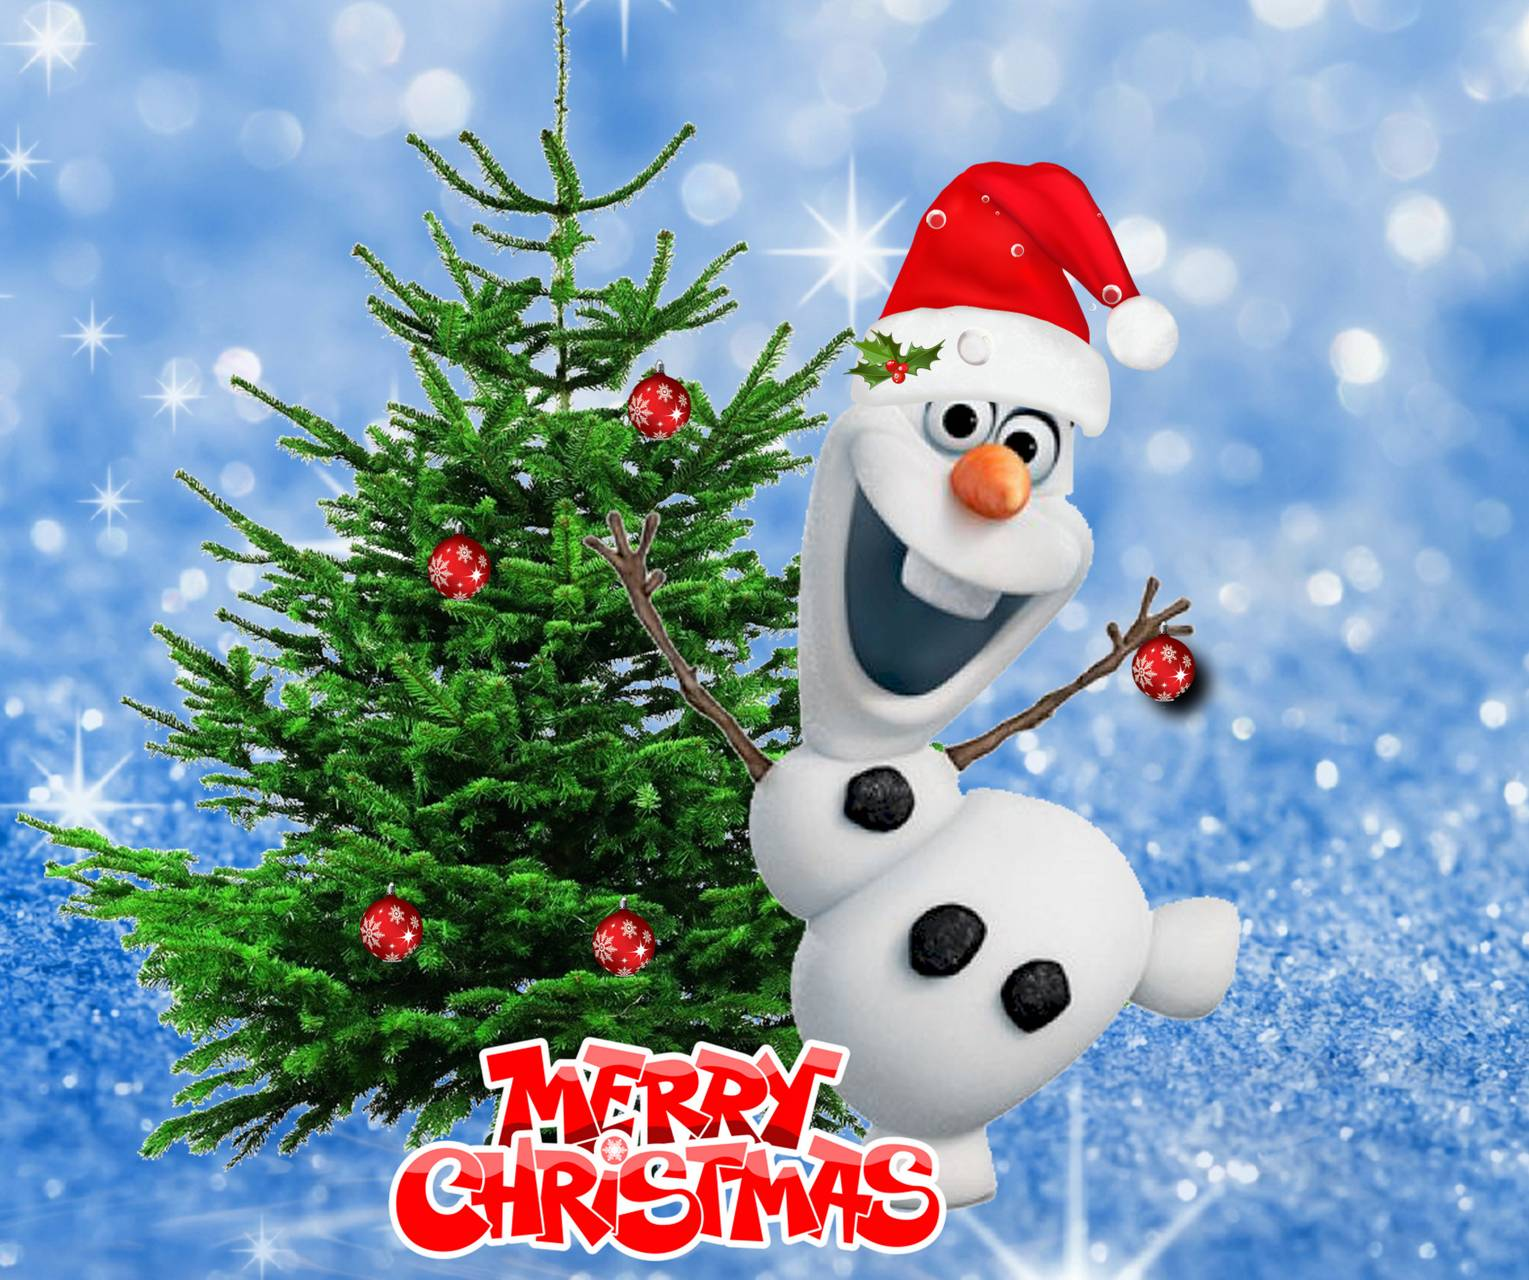 snowman olaf Wallpaper by bluecoral74 - f3 - Free on ZEDGE™